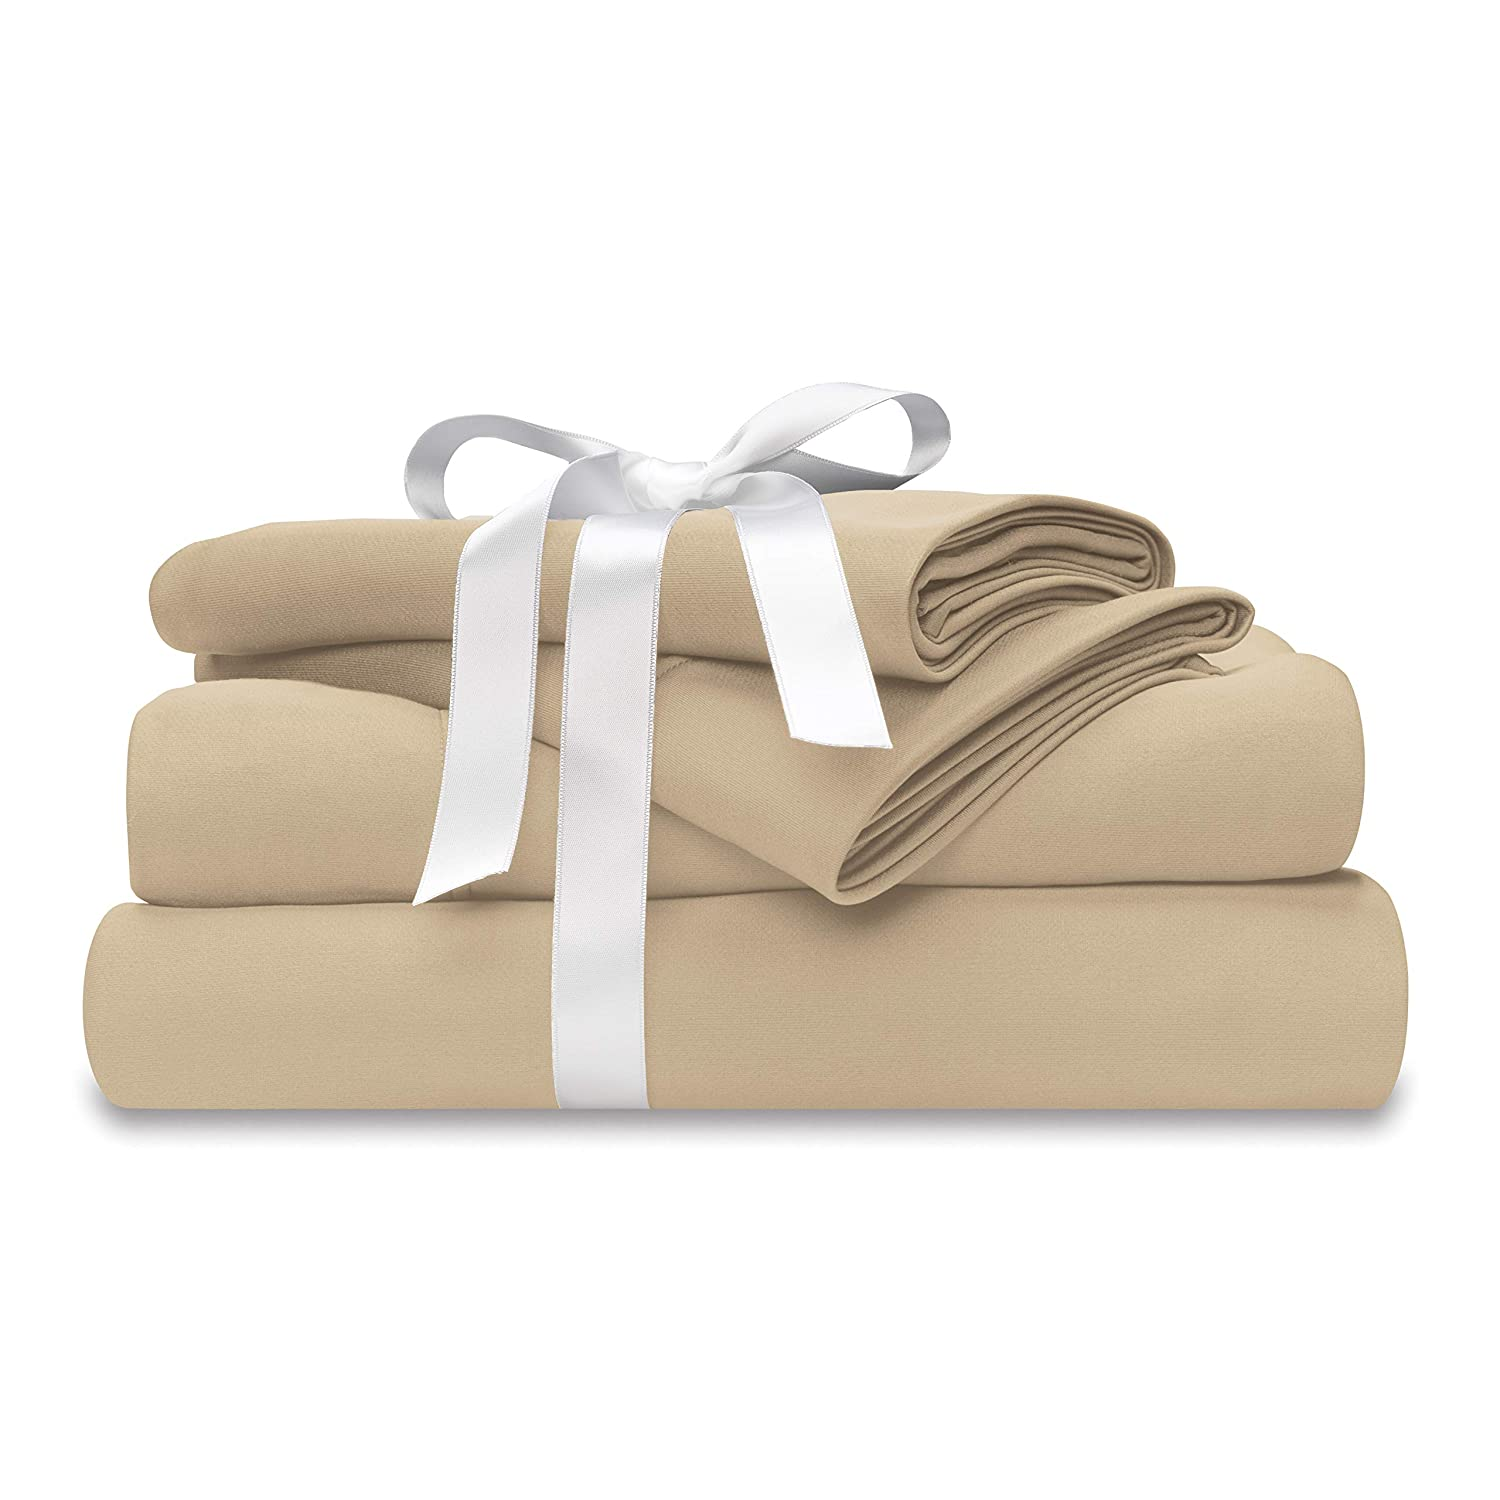 Wicked Sheets Moisture-Wicking + Cooling Bed Sheet Set/for Night Sweats & Hot Flashes (Queen, Standard Pocket, Beige)